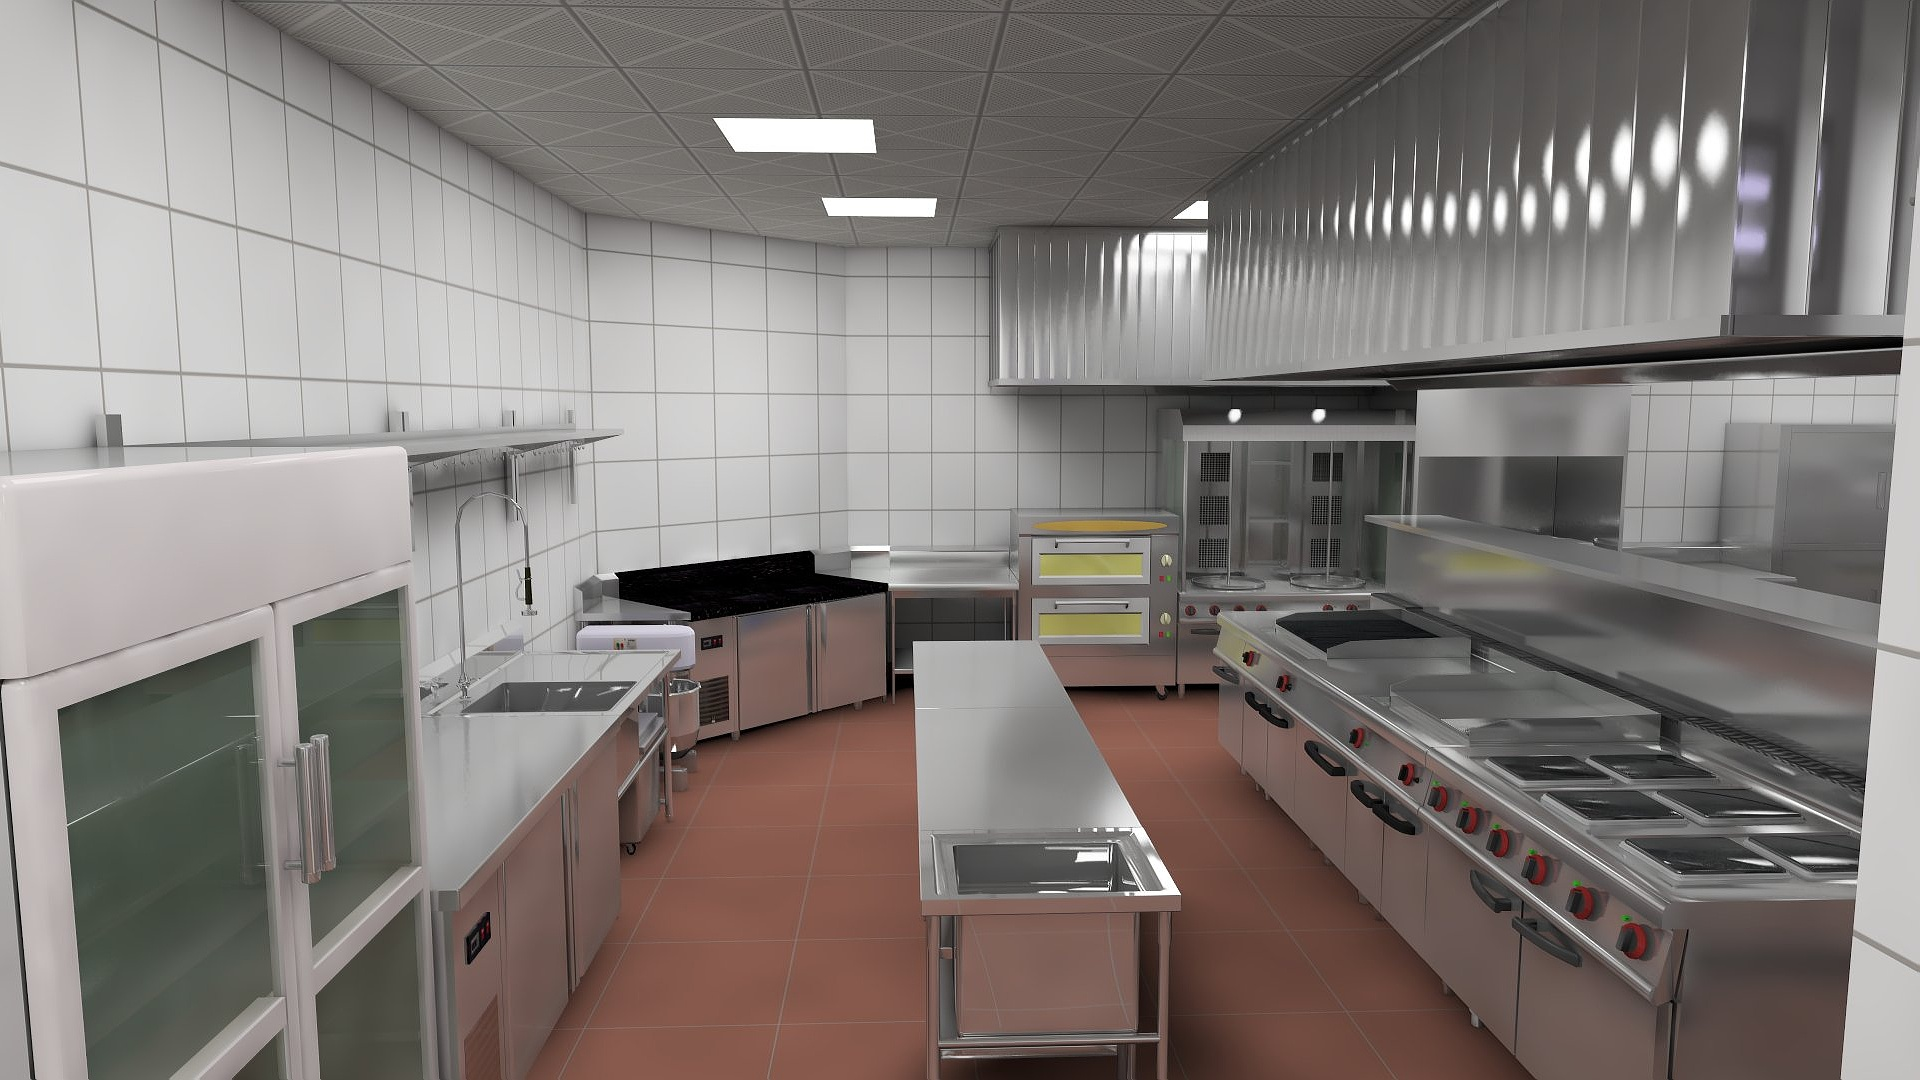 Commercial Kitchens Layout With Vr Kitchen Design And 3d